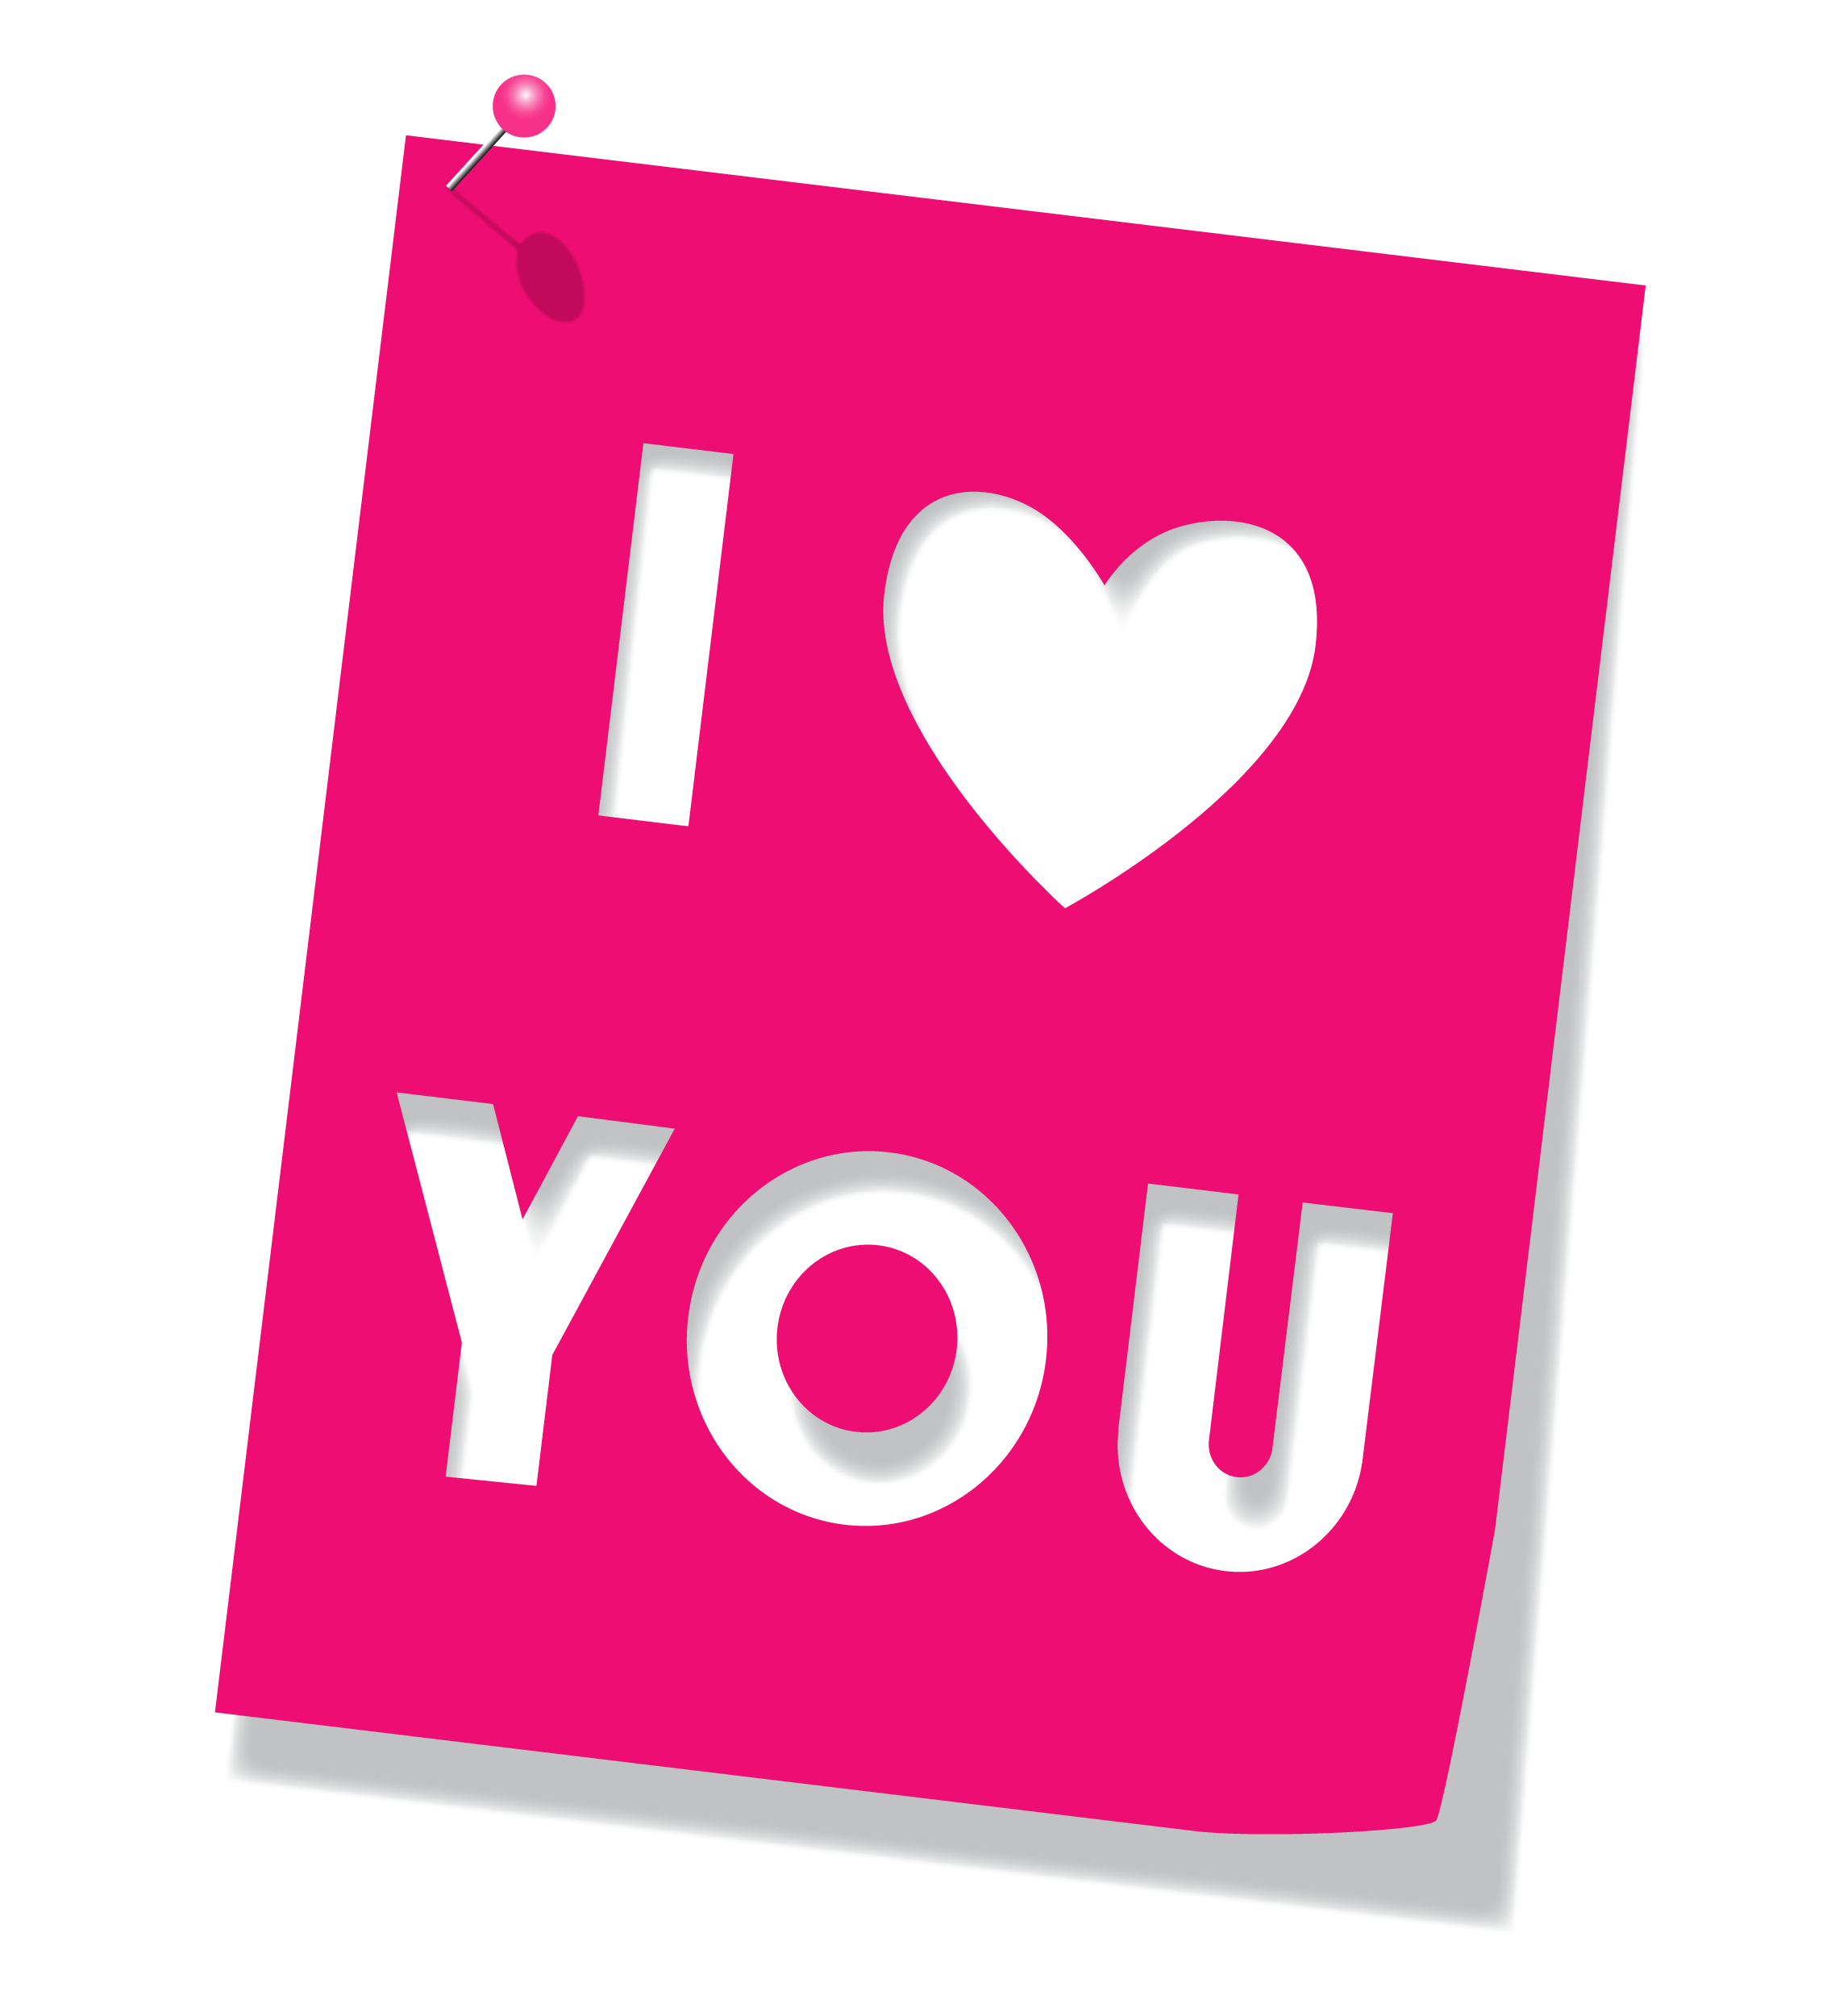 Luv clipart hd - Love You PNG HD - I Love U PNG HD